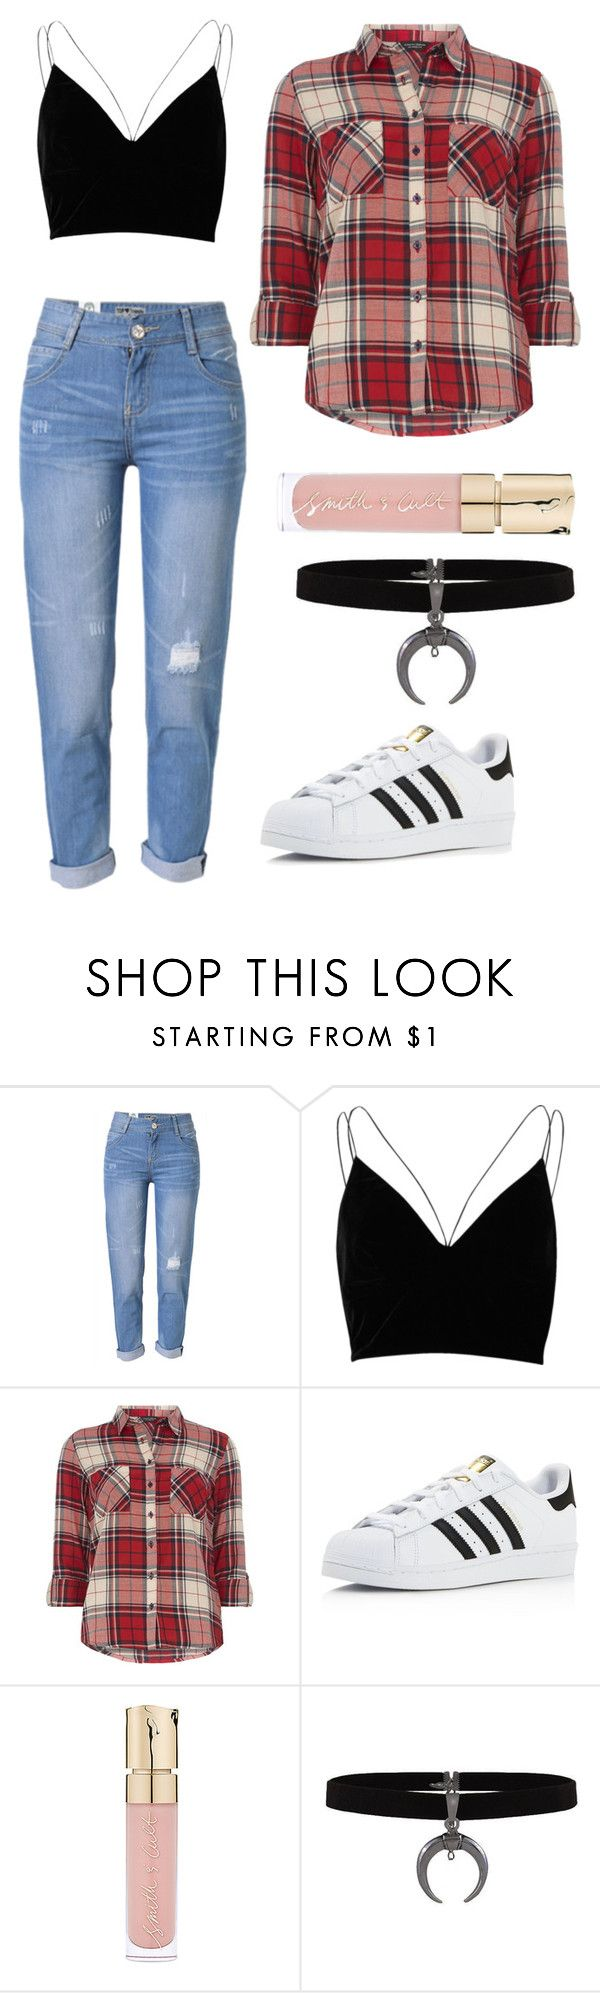 """""""Casual Summer Grunge-ish"""" by ifrancesconi on Polyvore featuring WithChic, River Island, Dorothy Perkins, adidas and Smith & Cult"""